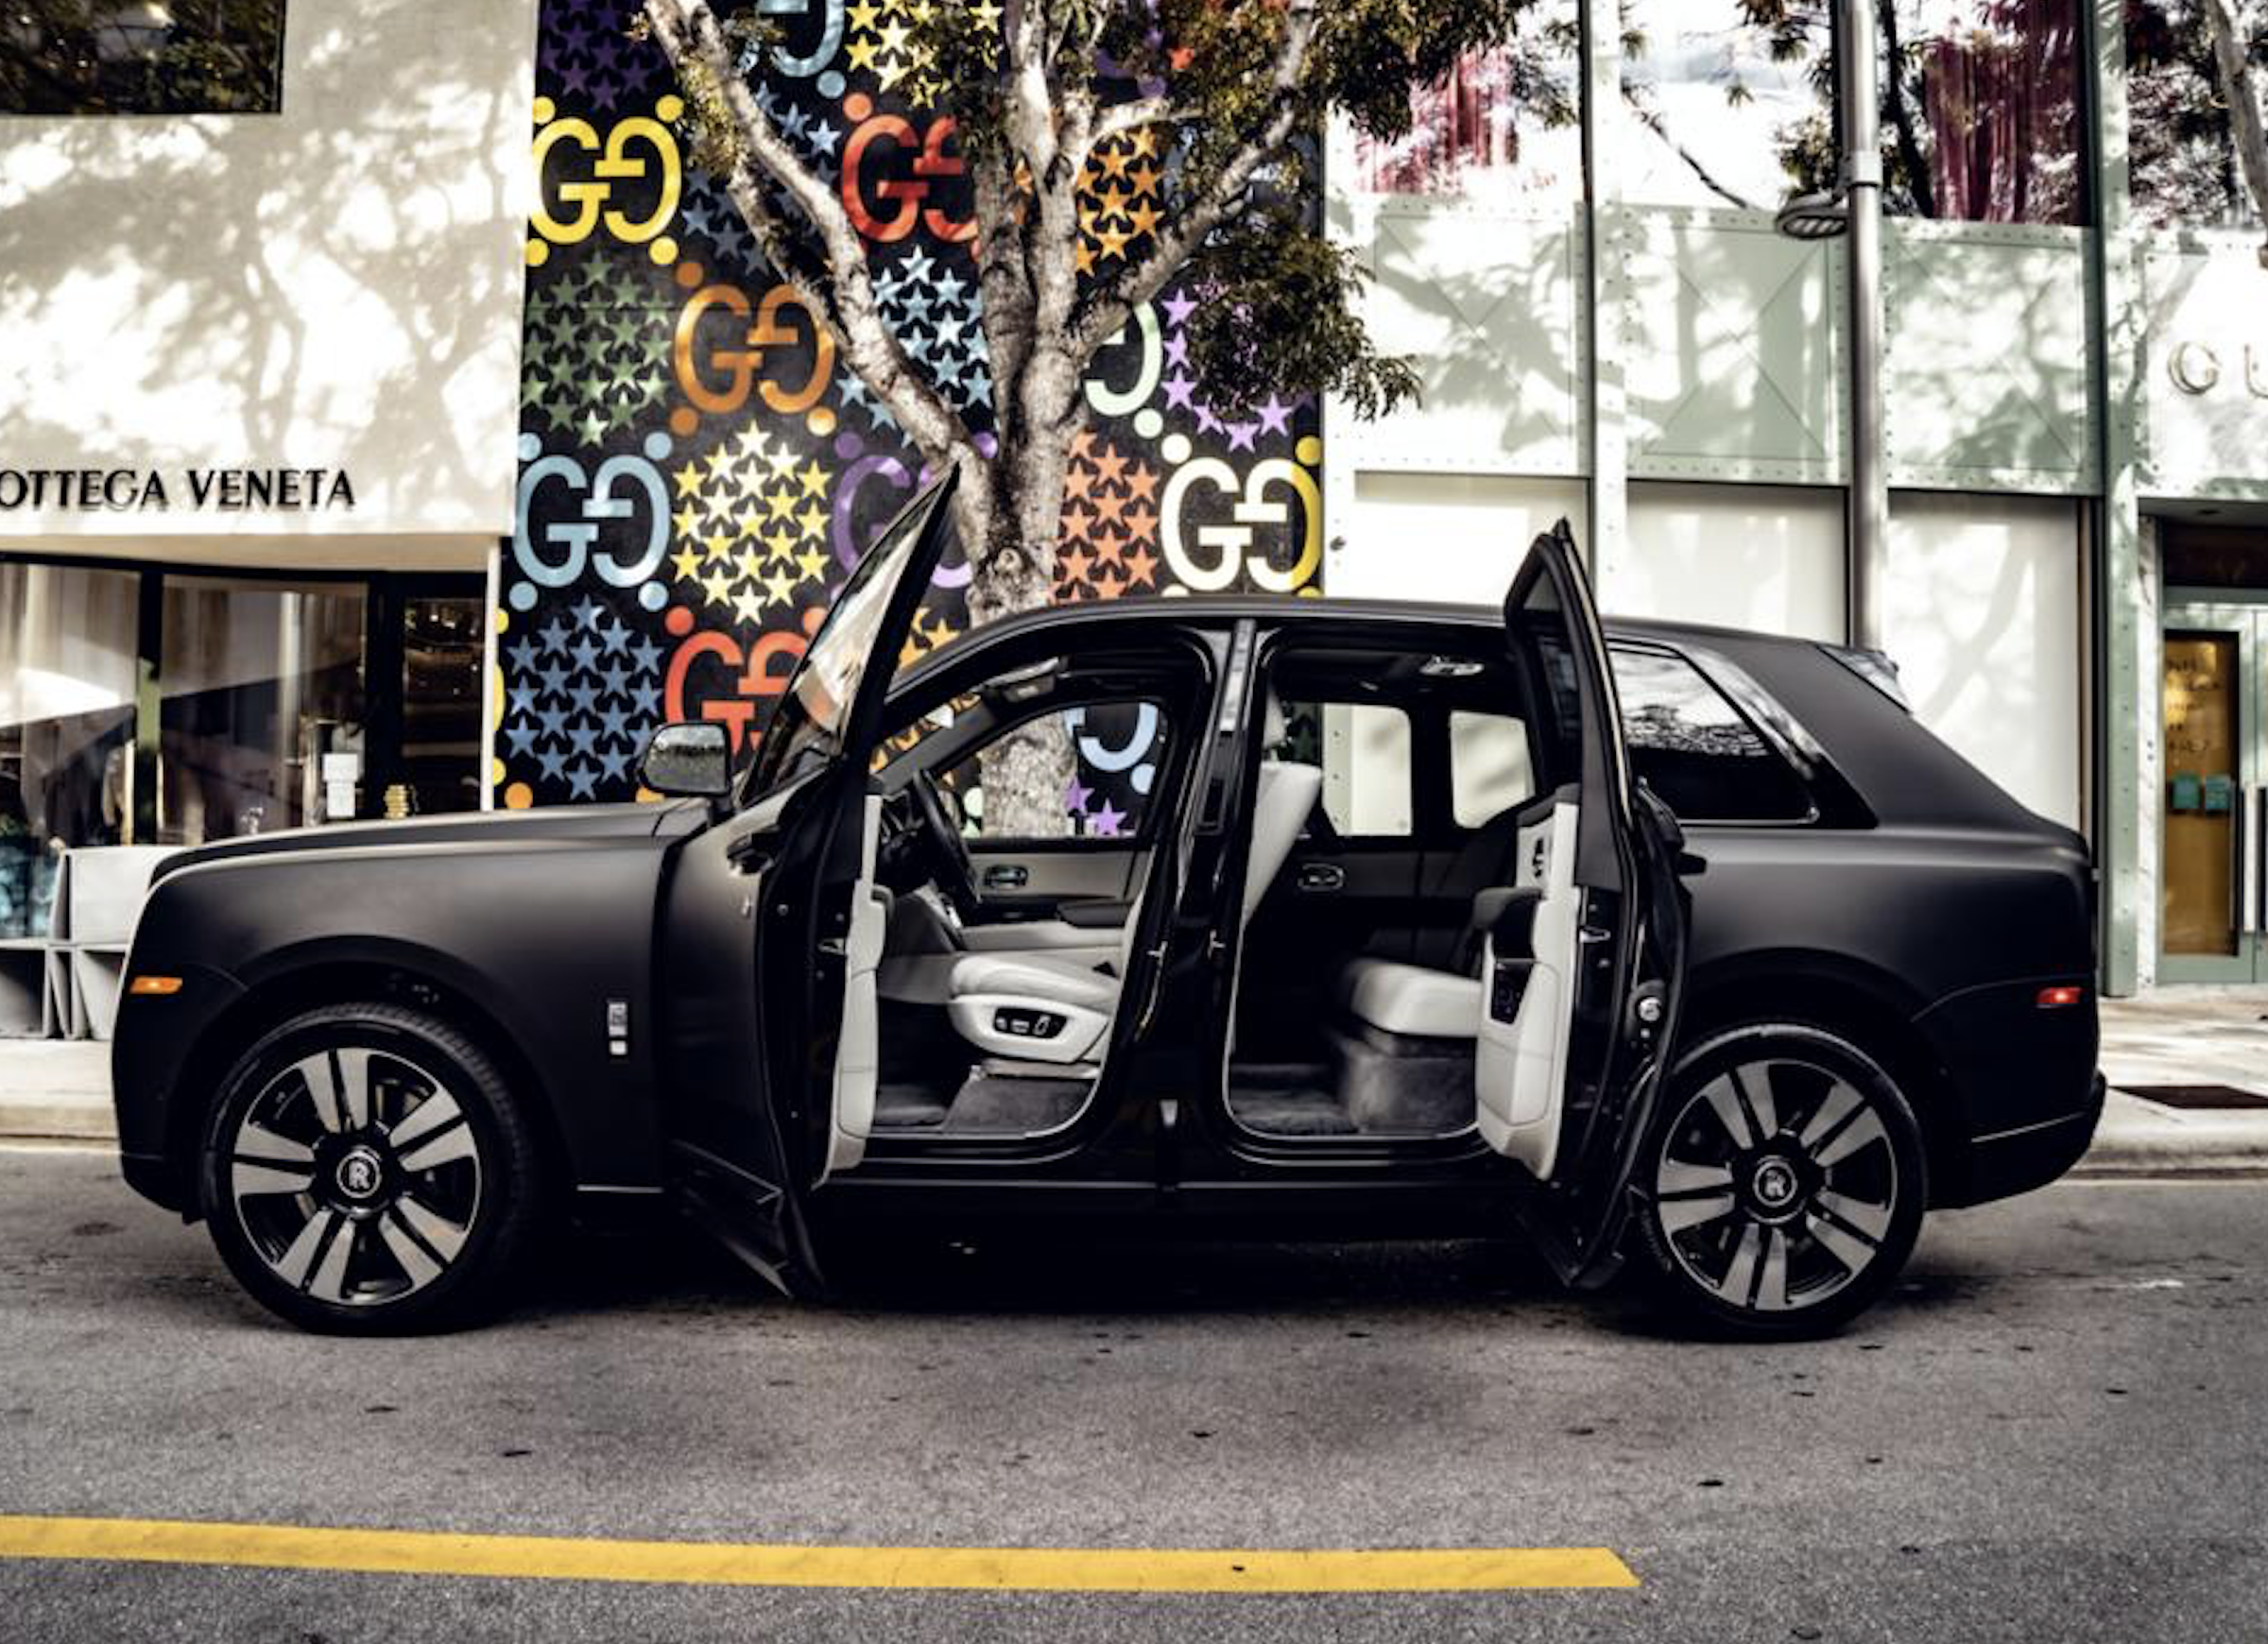 Image #11 of our  2021 ROLLS ROYCE CULLINAN - MATT BLACK    In Miami Fort Lauderdale Palm Beach South Florida